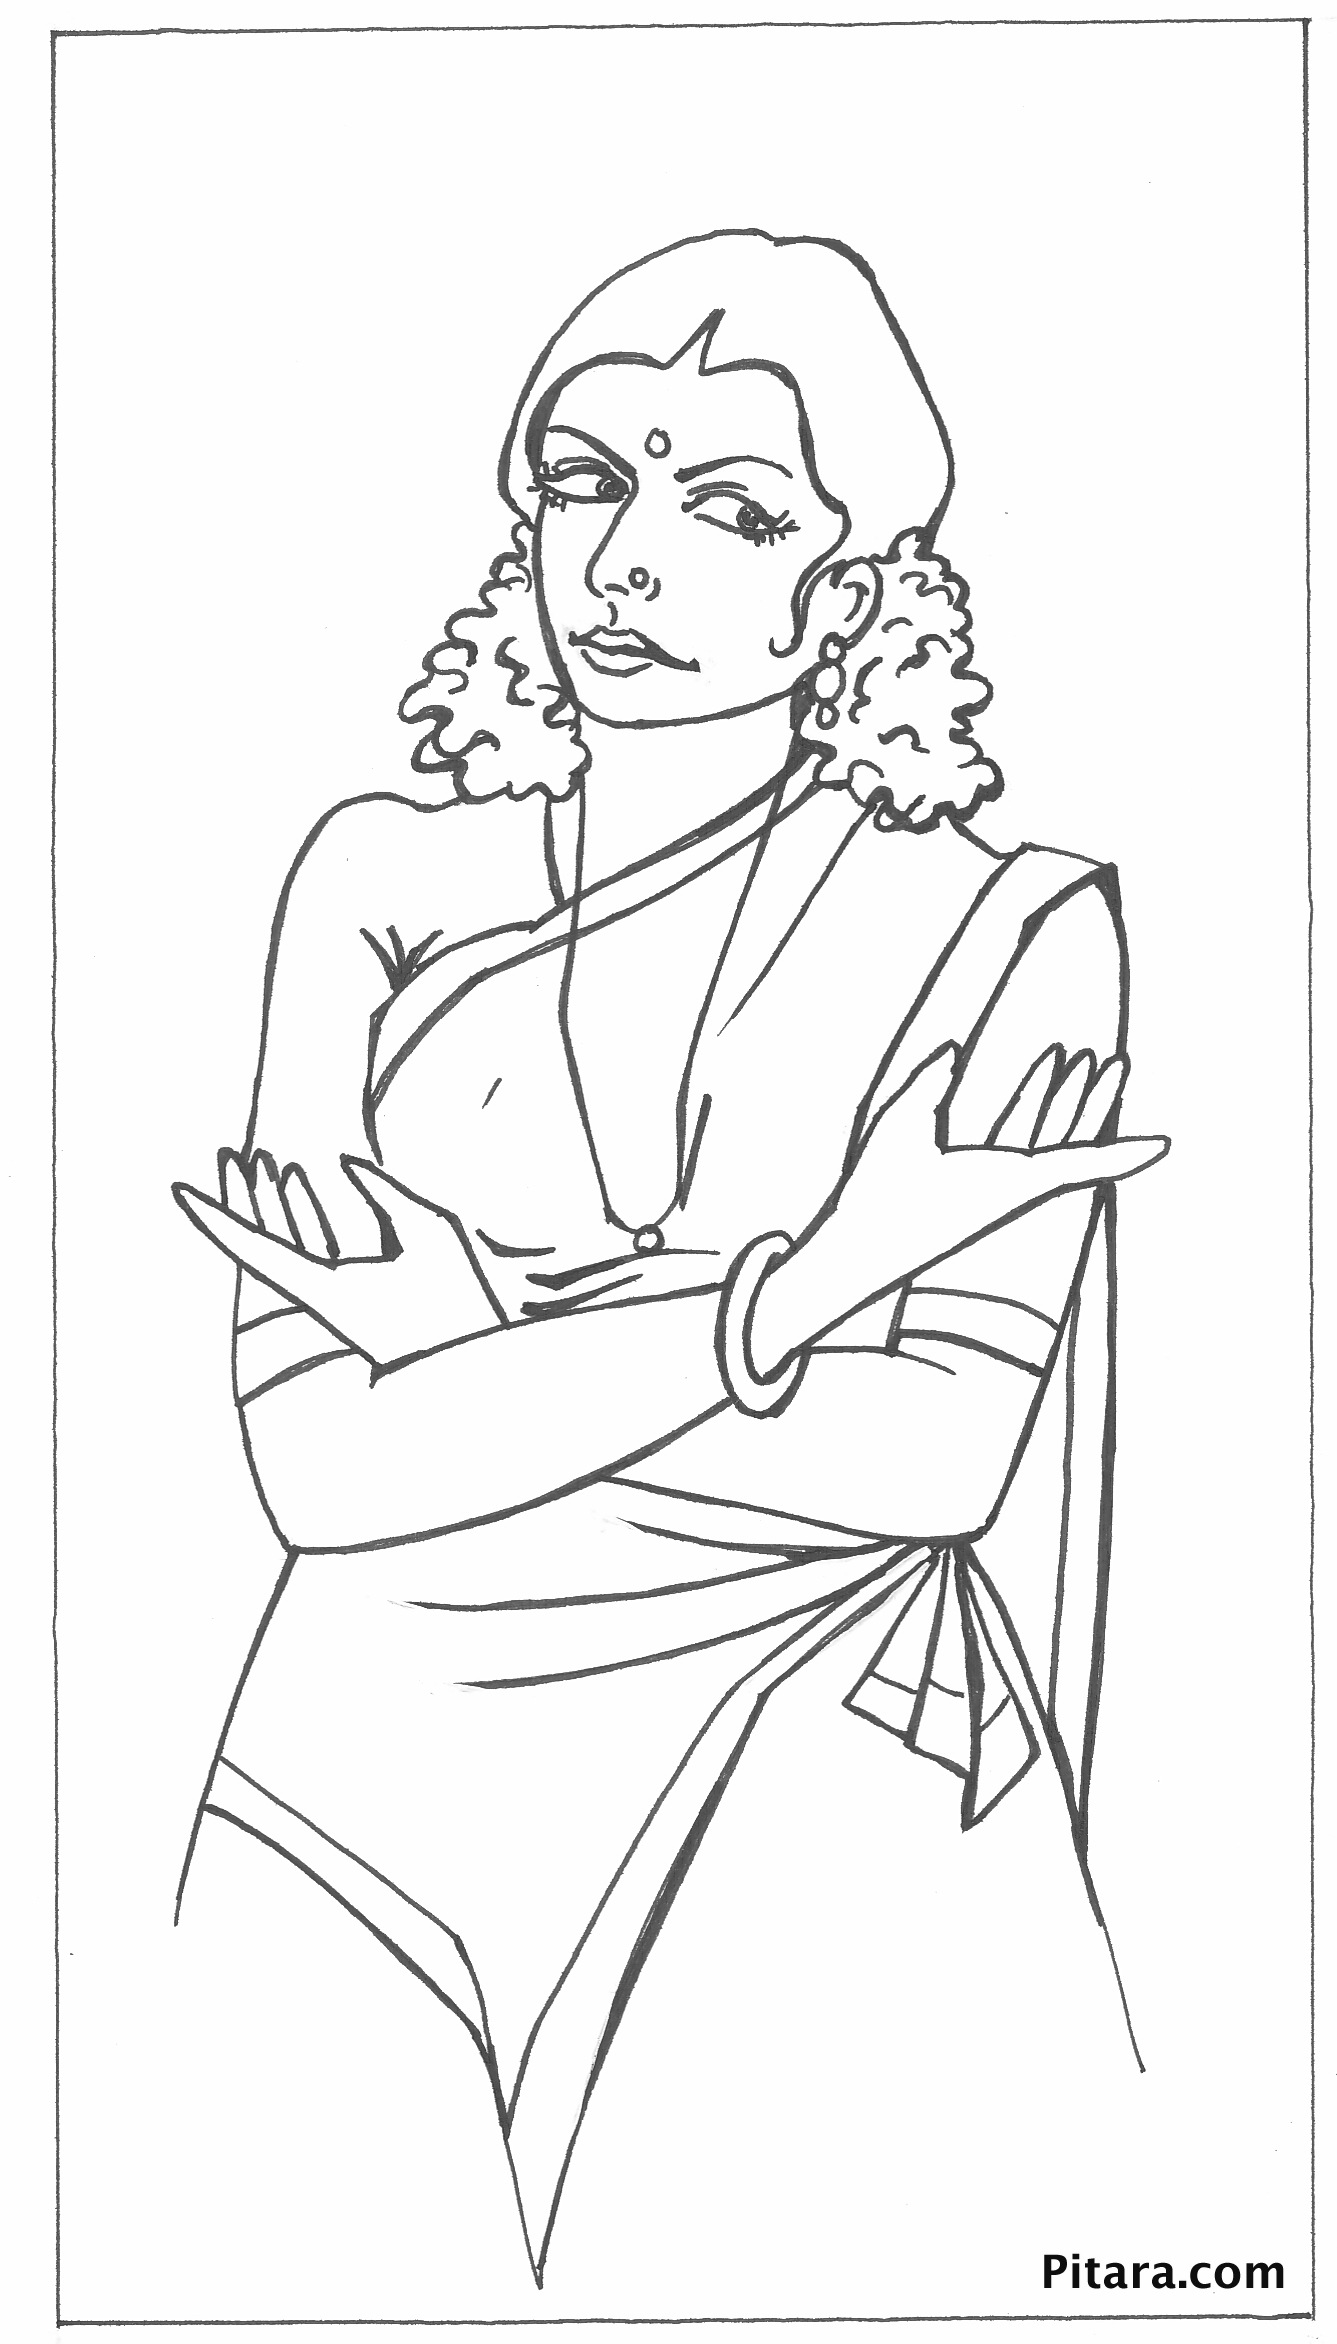 dancing styles coloring pages pitara kids network